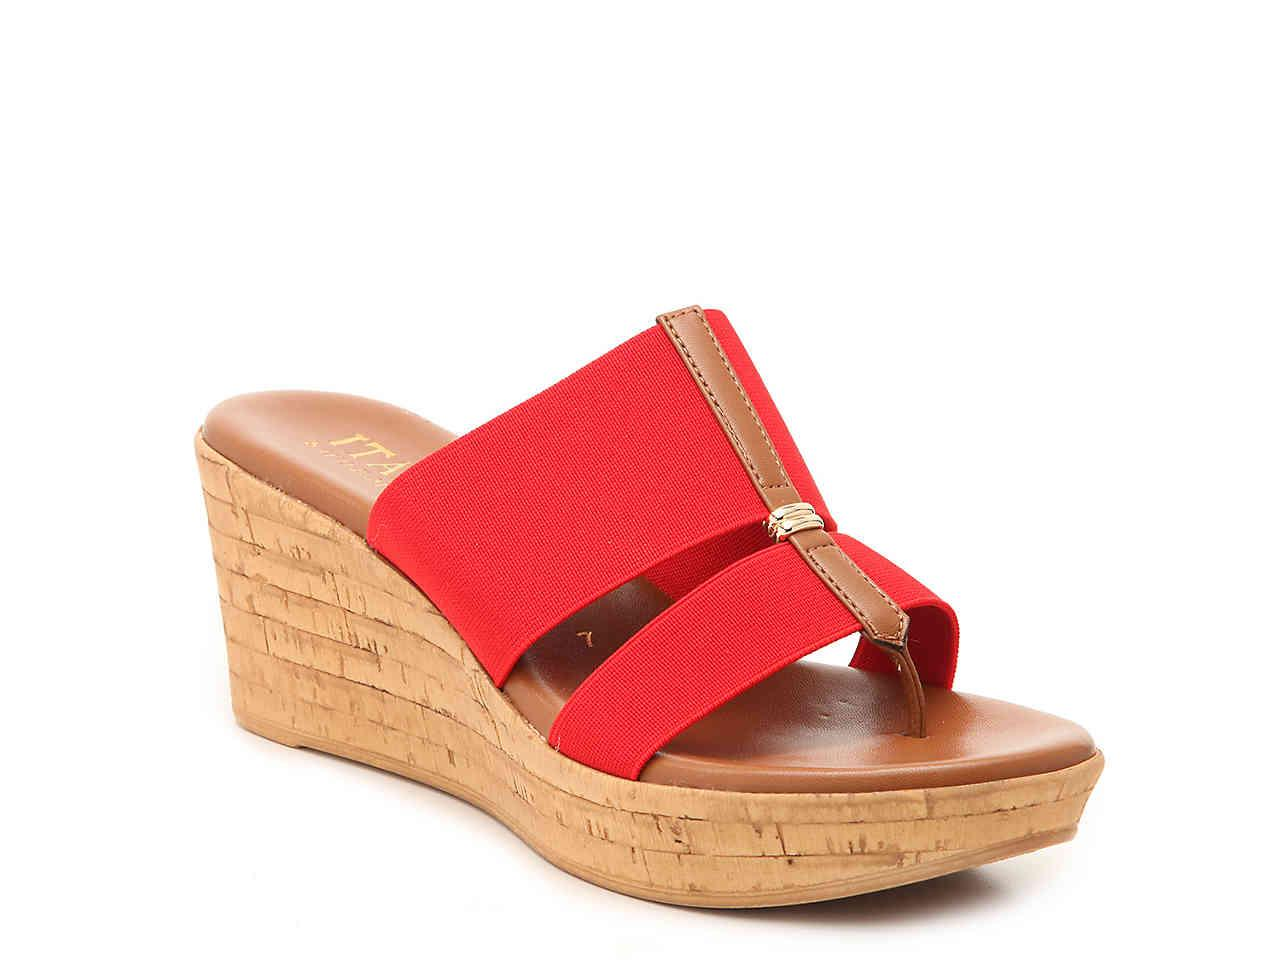 fb252ffe1e608 Lyst - Italian Shoemakers Nami Wedge Sandal in Red